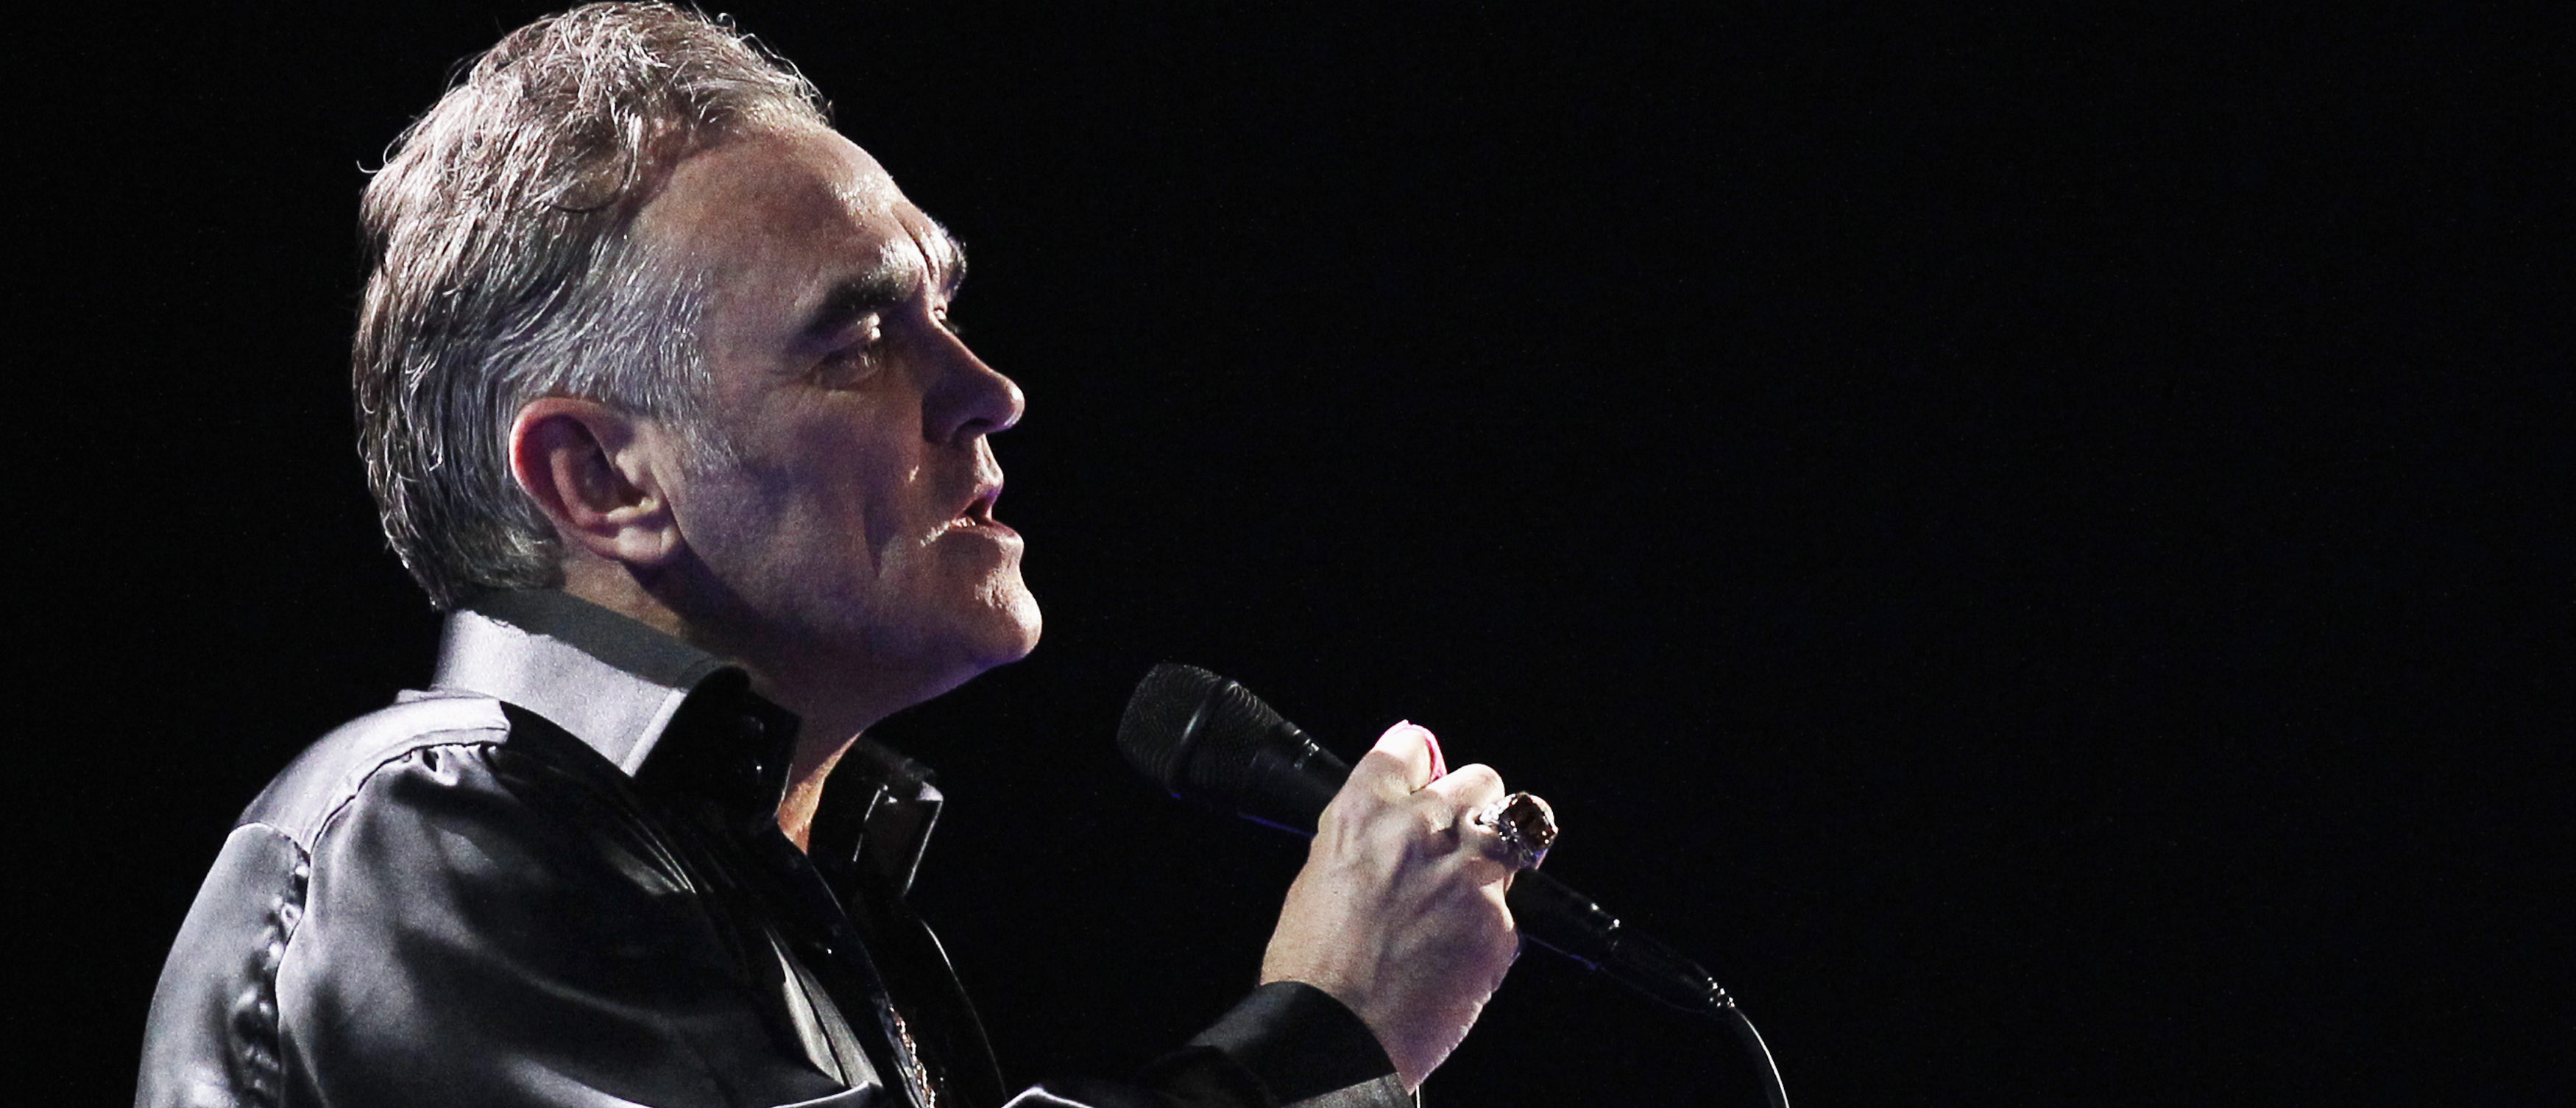 British singer-songwriter Morrissey performs during the International Song Festival in Vina del Mar city, about 121 km (75 miles) northwest of Santiago, Chile, February 24, 2012. REUTERS/Eliseo Fernandez